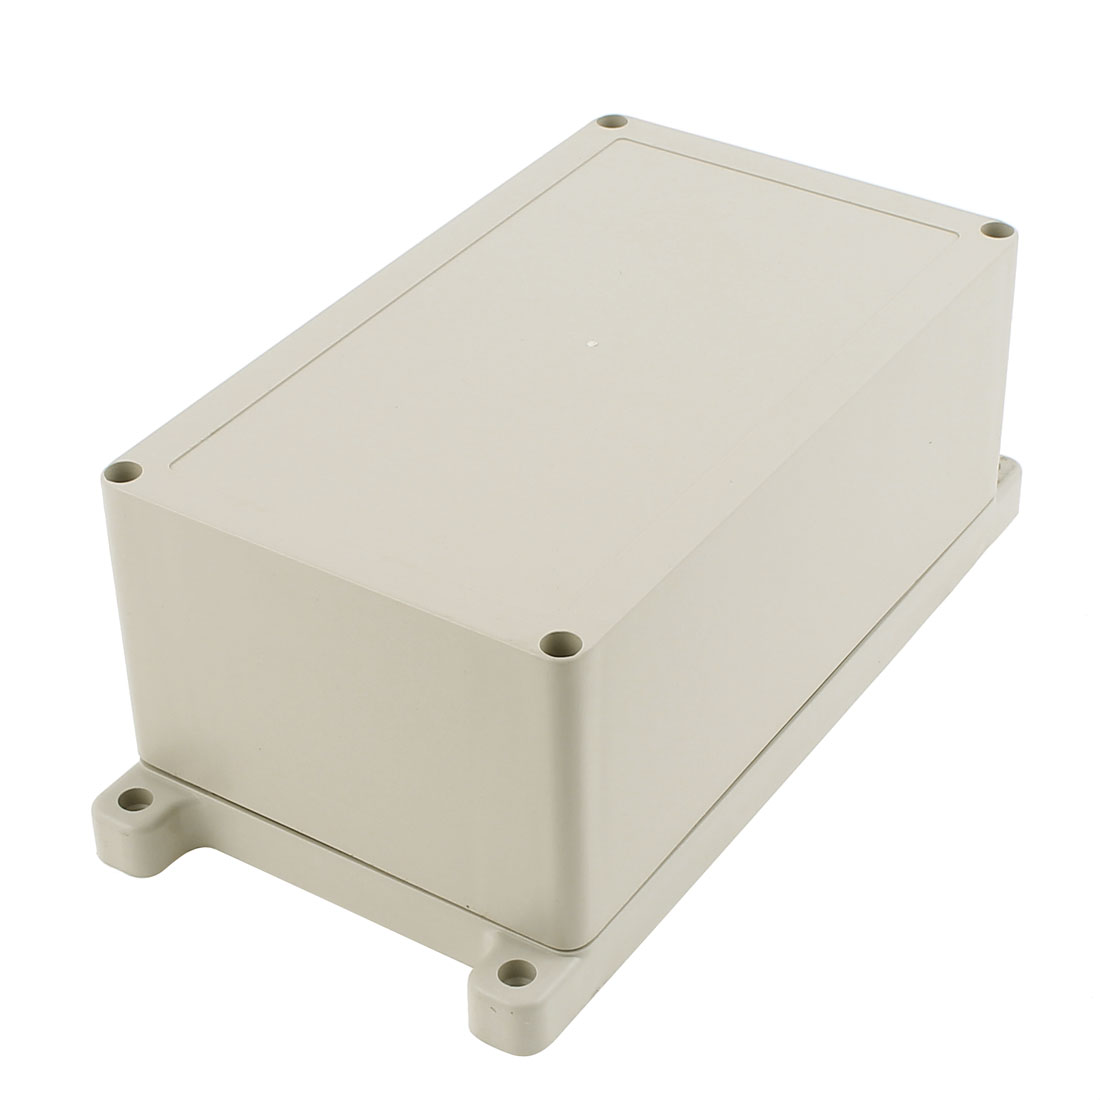 200 x 120 x 90mm Dustproof IP65 Junction Box Terminal Connecting Enclosure